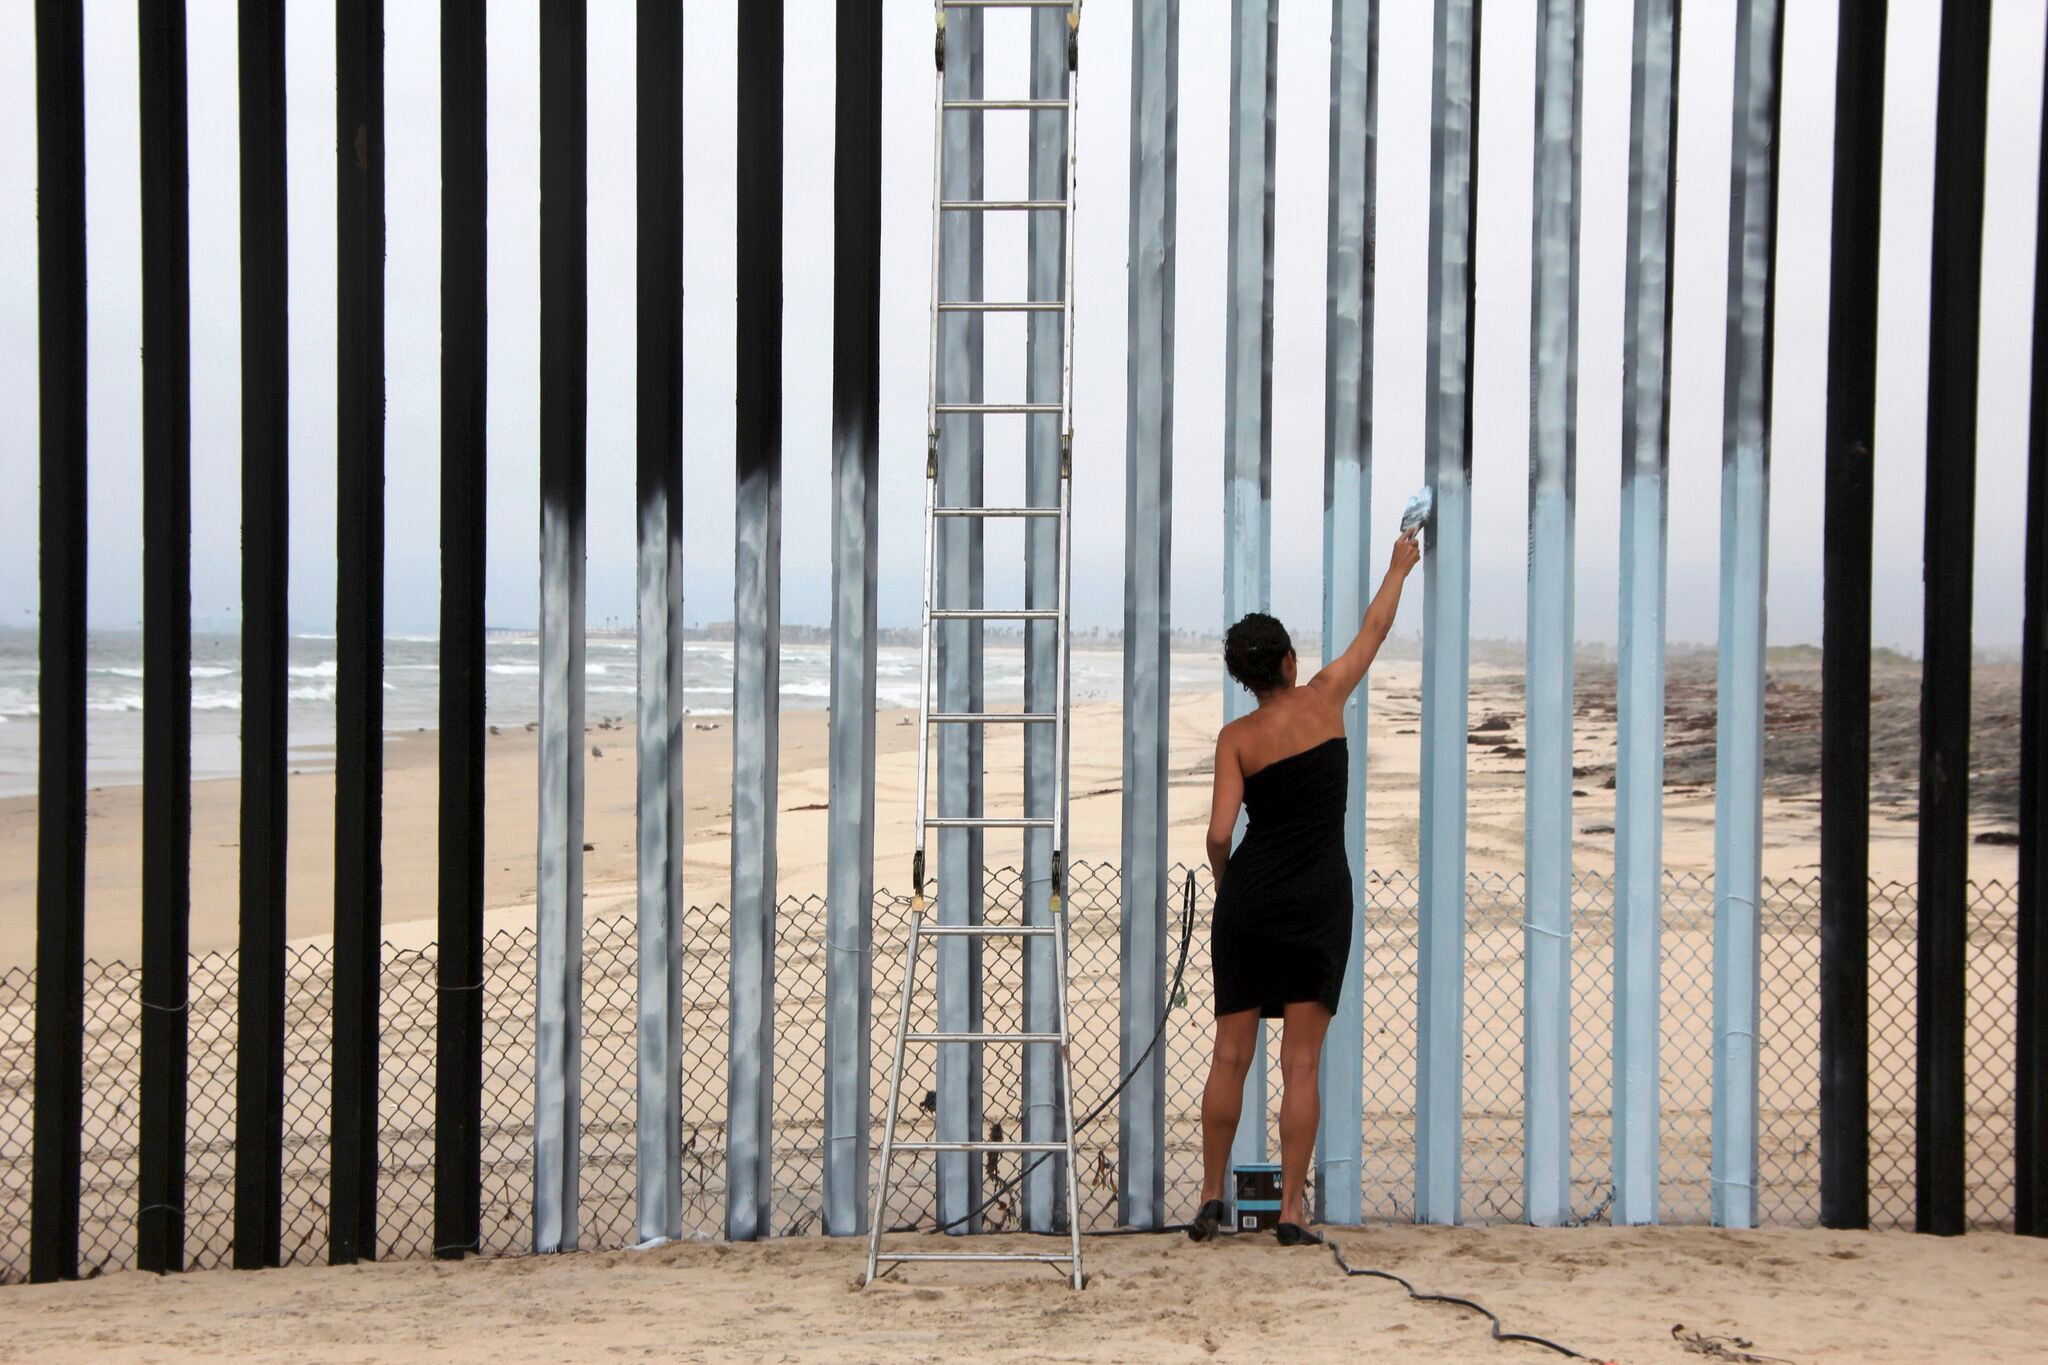 Borrando la Frontera (Erasing the Border), Ana Teresa Fernández. Performance at Tijuana/San Diego Border, 2011. Photographed by the artist's mother Maria Teresa Fernández, courtesy of artist and Gallery Wendi Norris